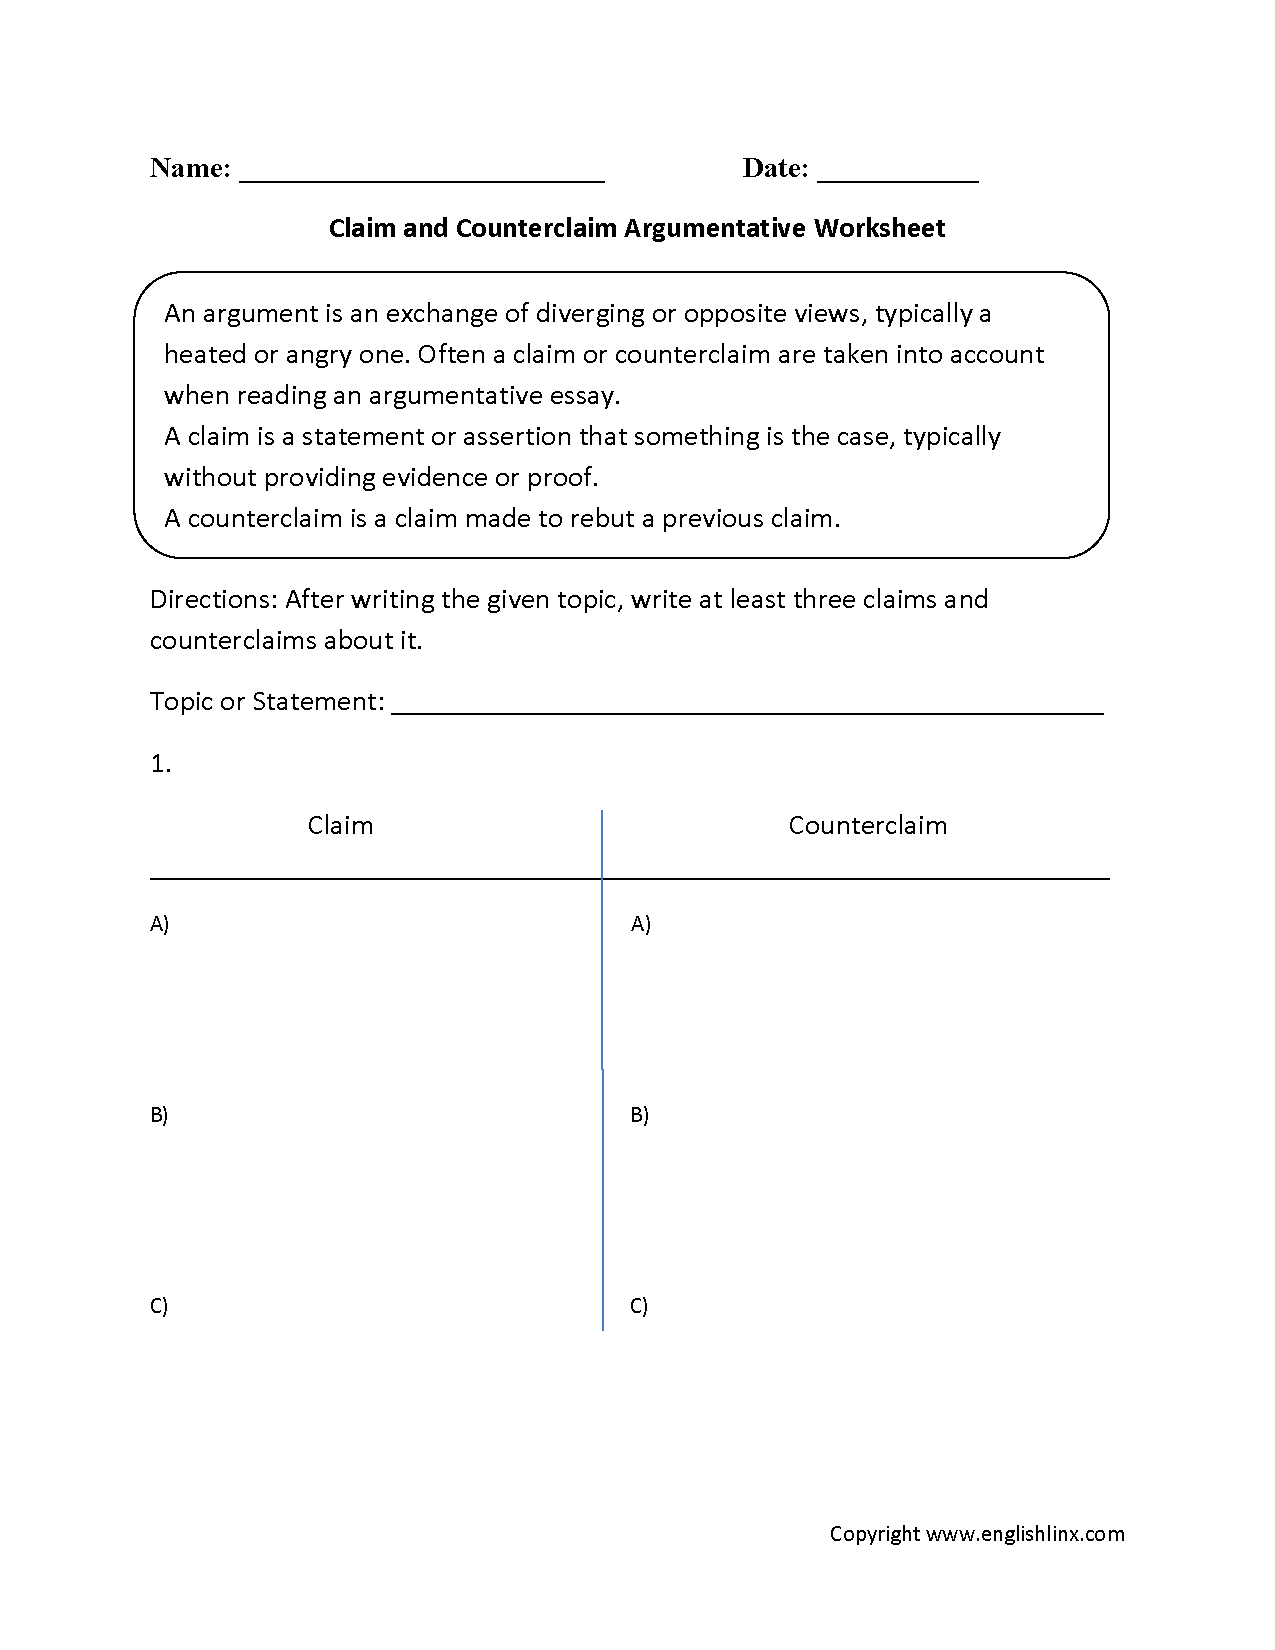 reading worksheets argumentative worksheets claim and counterclaim argumentative worksheets